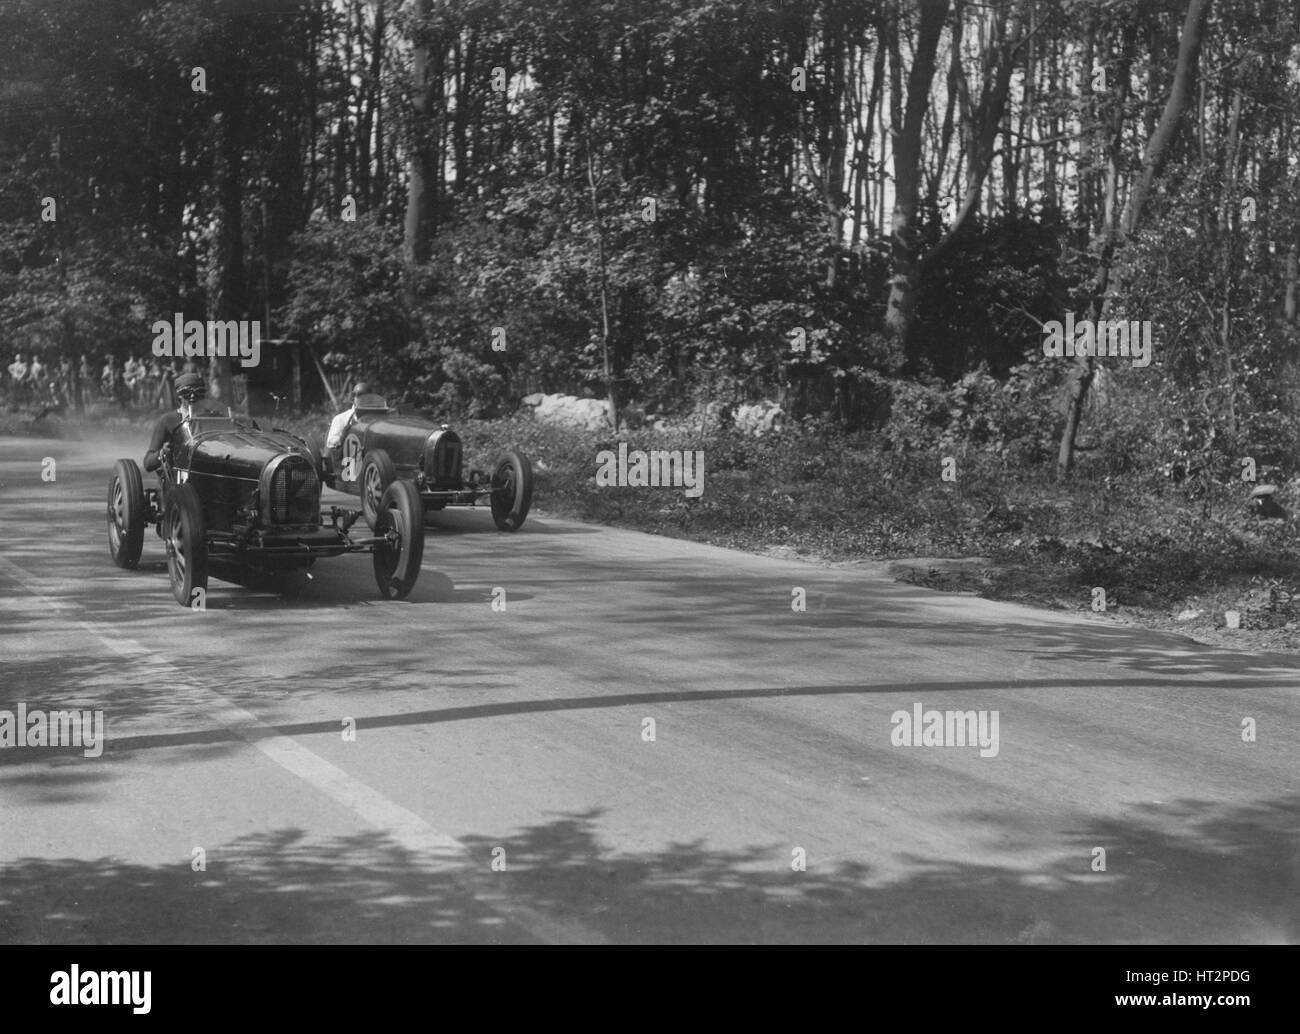 Bugattis of Jock Leith and Teddy Rayson racing at Donington Park, Leicestershire, 1935. Artist: Bill Brunell. - Stock Image